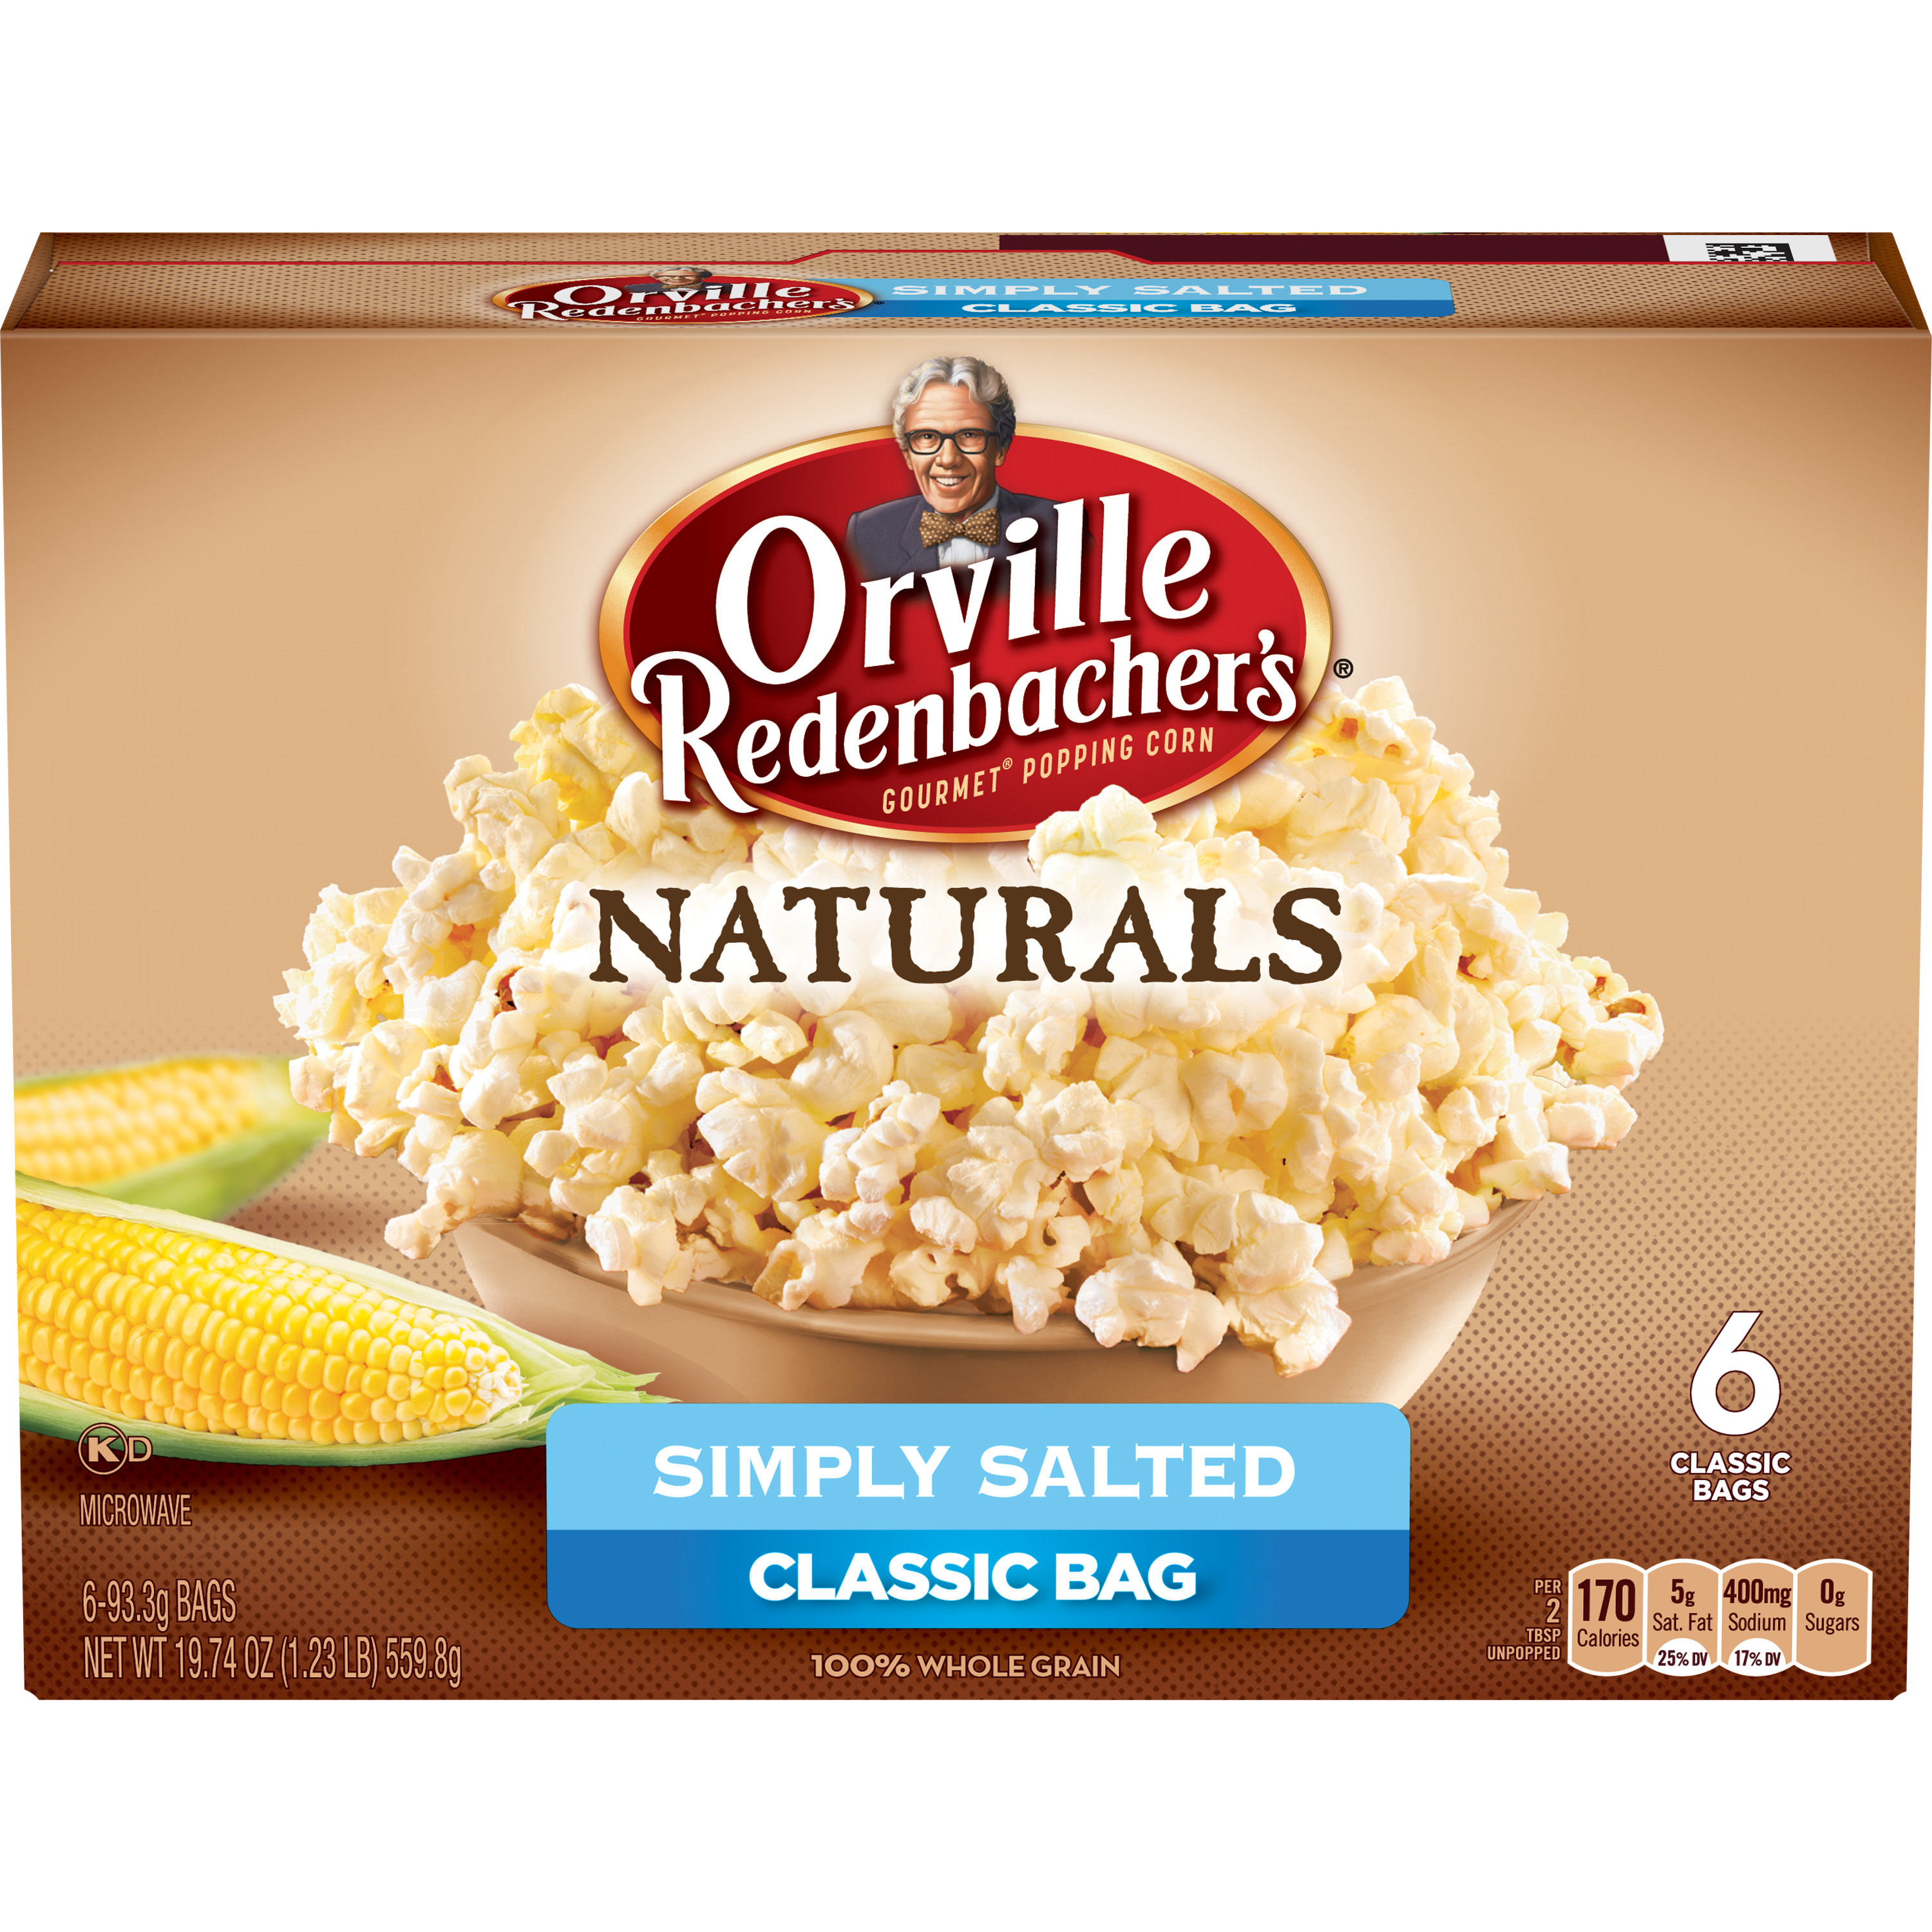 Orville Redenbacher's Natural Simply Salted Microwave Popcorn, 6 pk